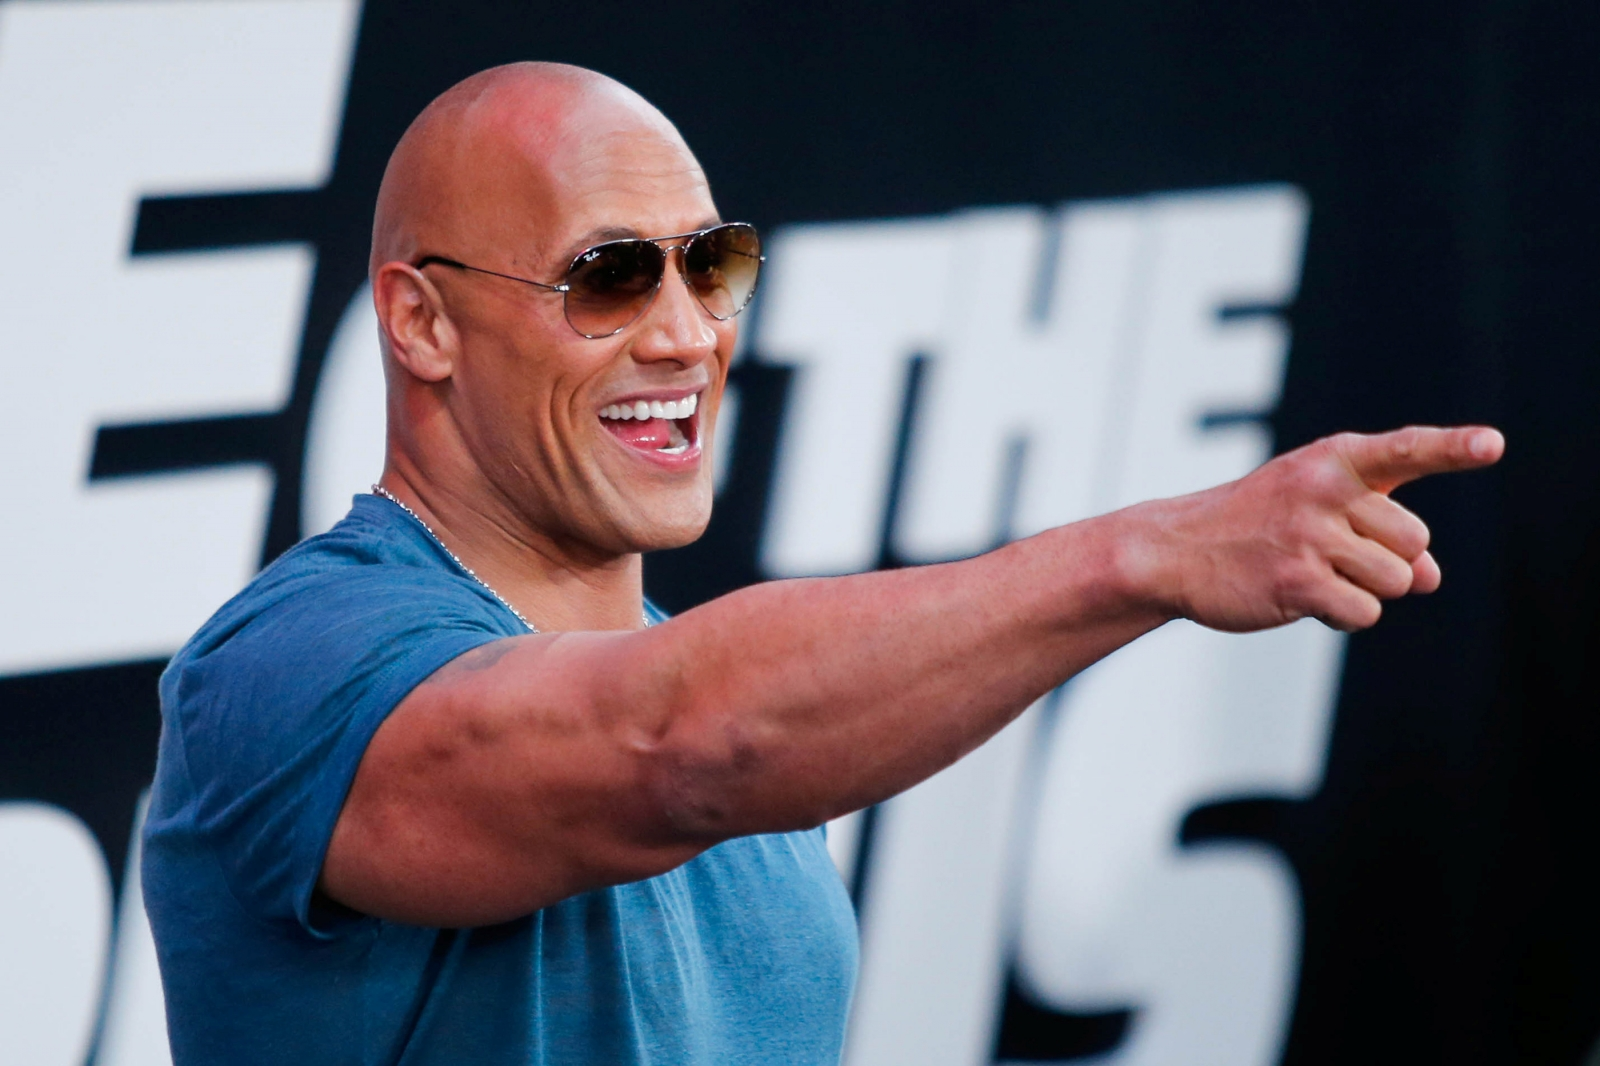 Images Of Dwayne The Rock Johnson: The Rock For President? 'Run The Rock 2020' Drafts Dwayne